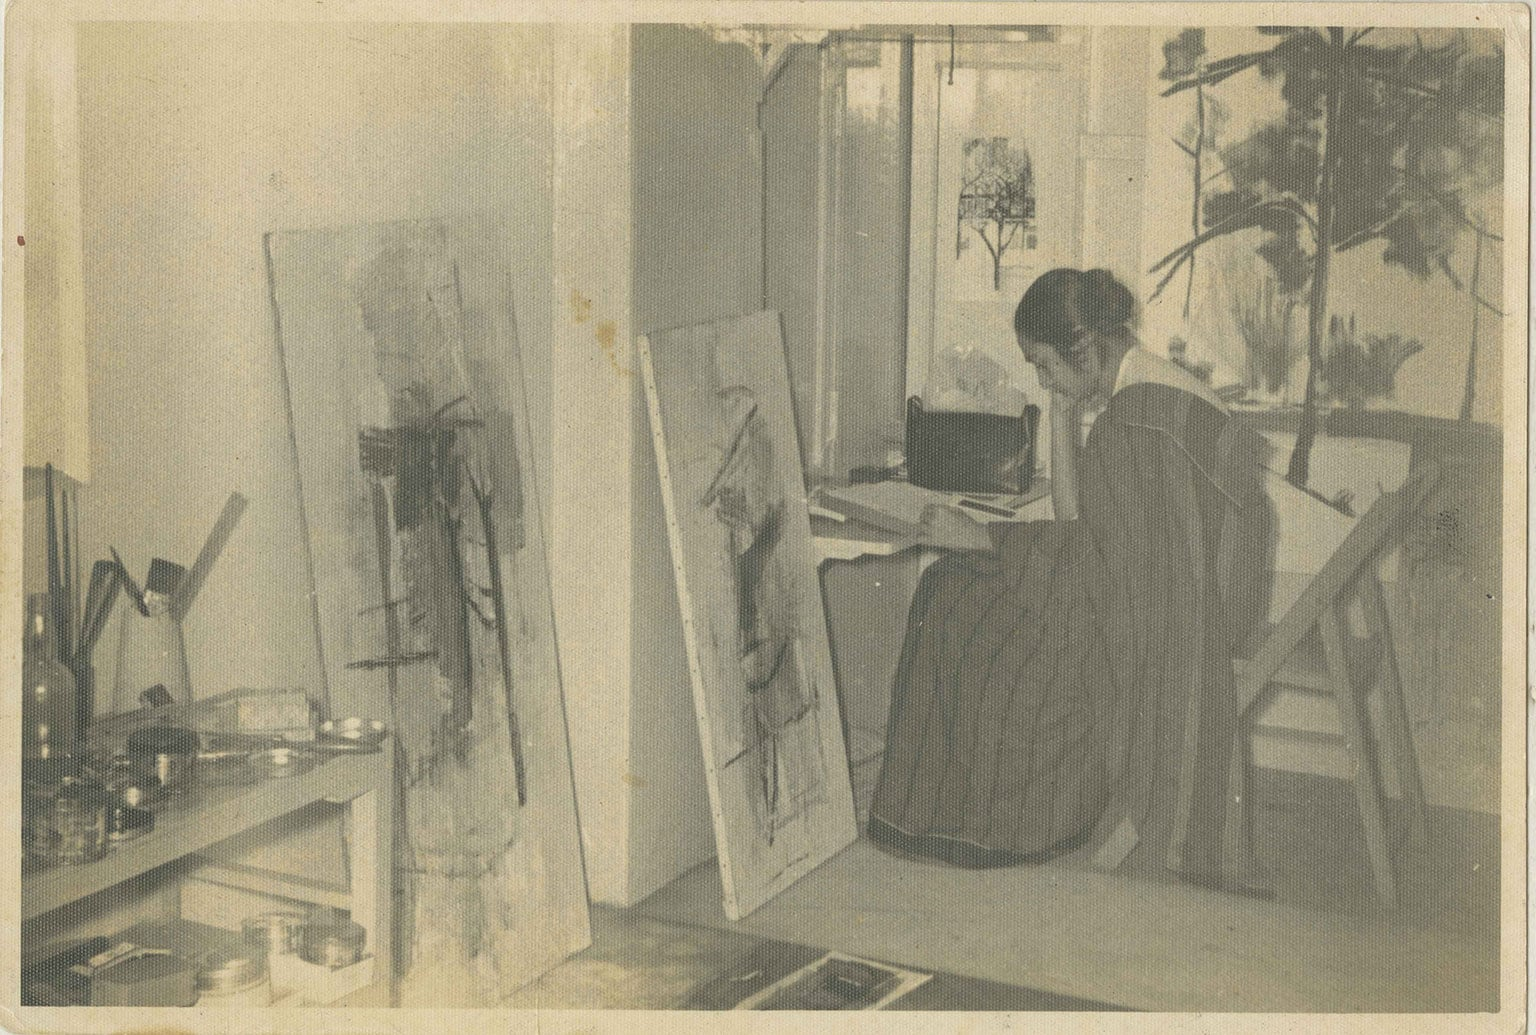 2. Nasreen Mohamedi, 6 June – 5 October 2014 - Tate Liverpool. 50% off with National Art Pass